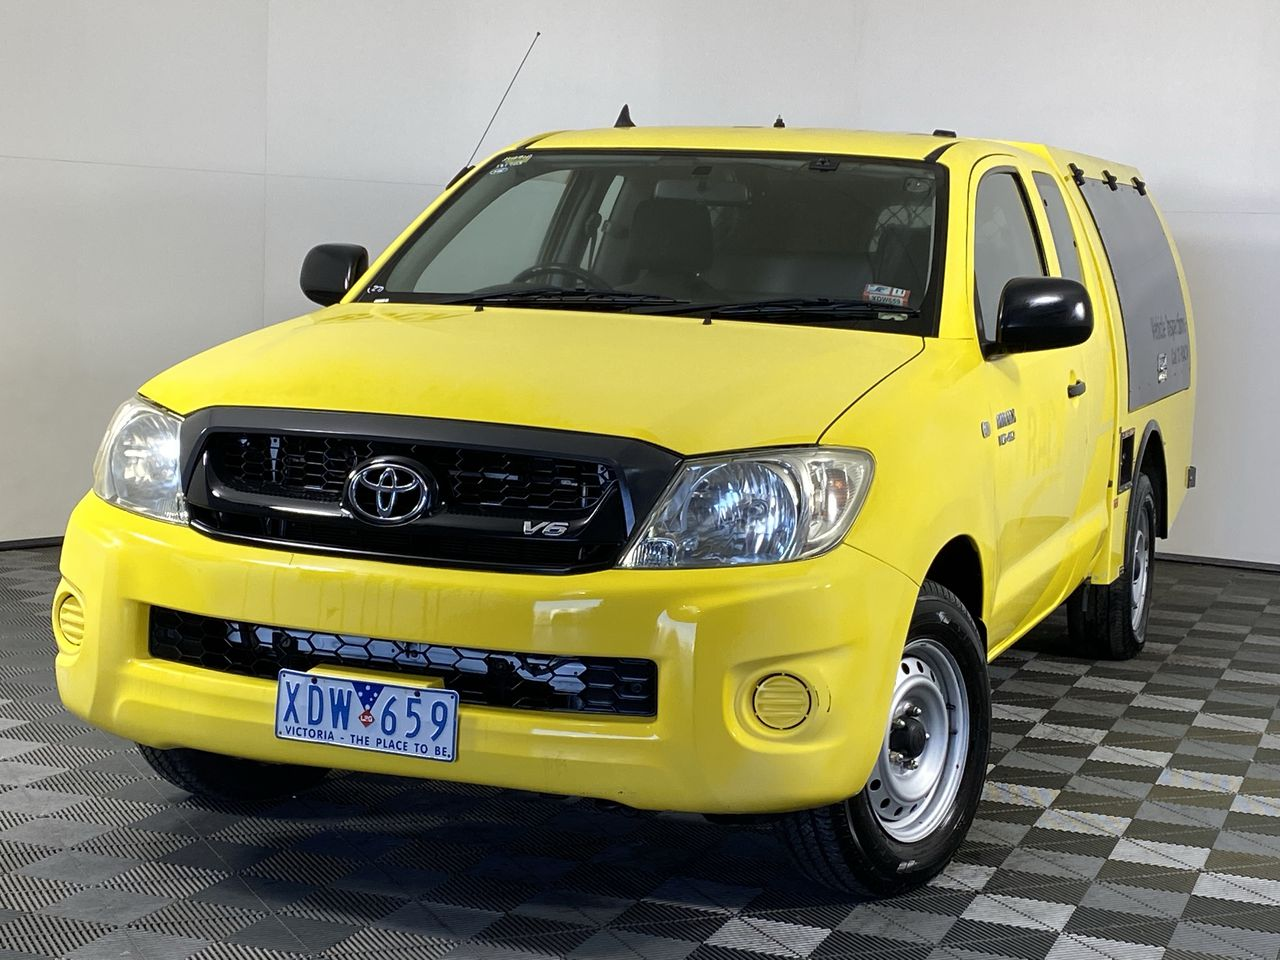 2009 Toyota Hilux SR GGN15R Automatic Ute (EX RACV)